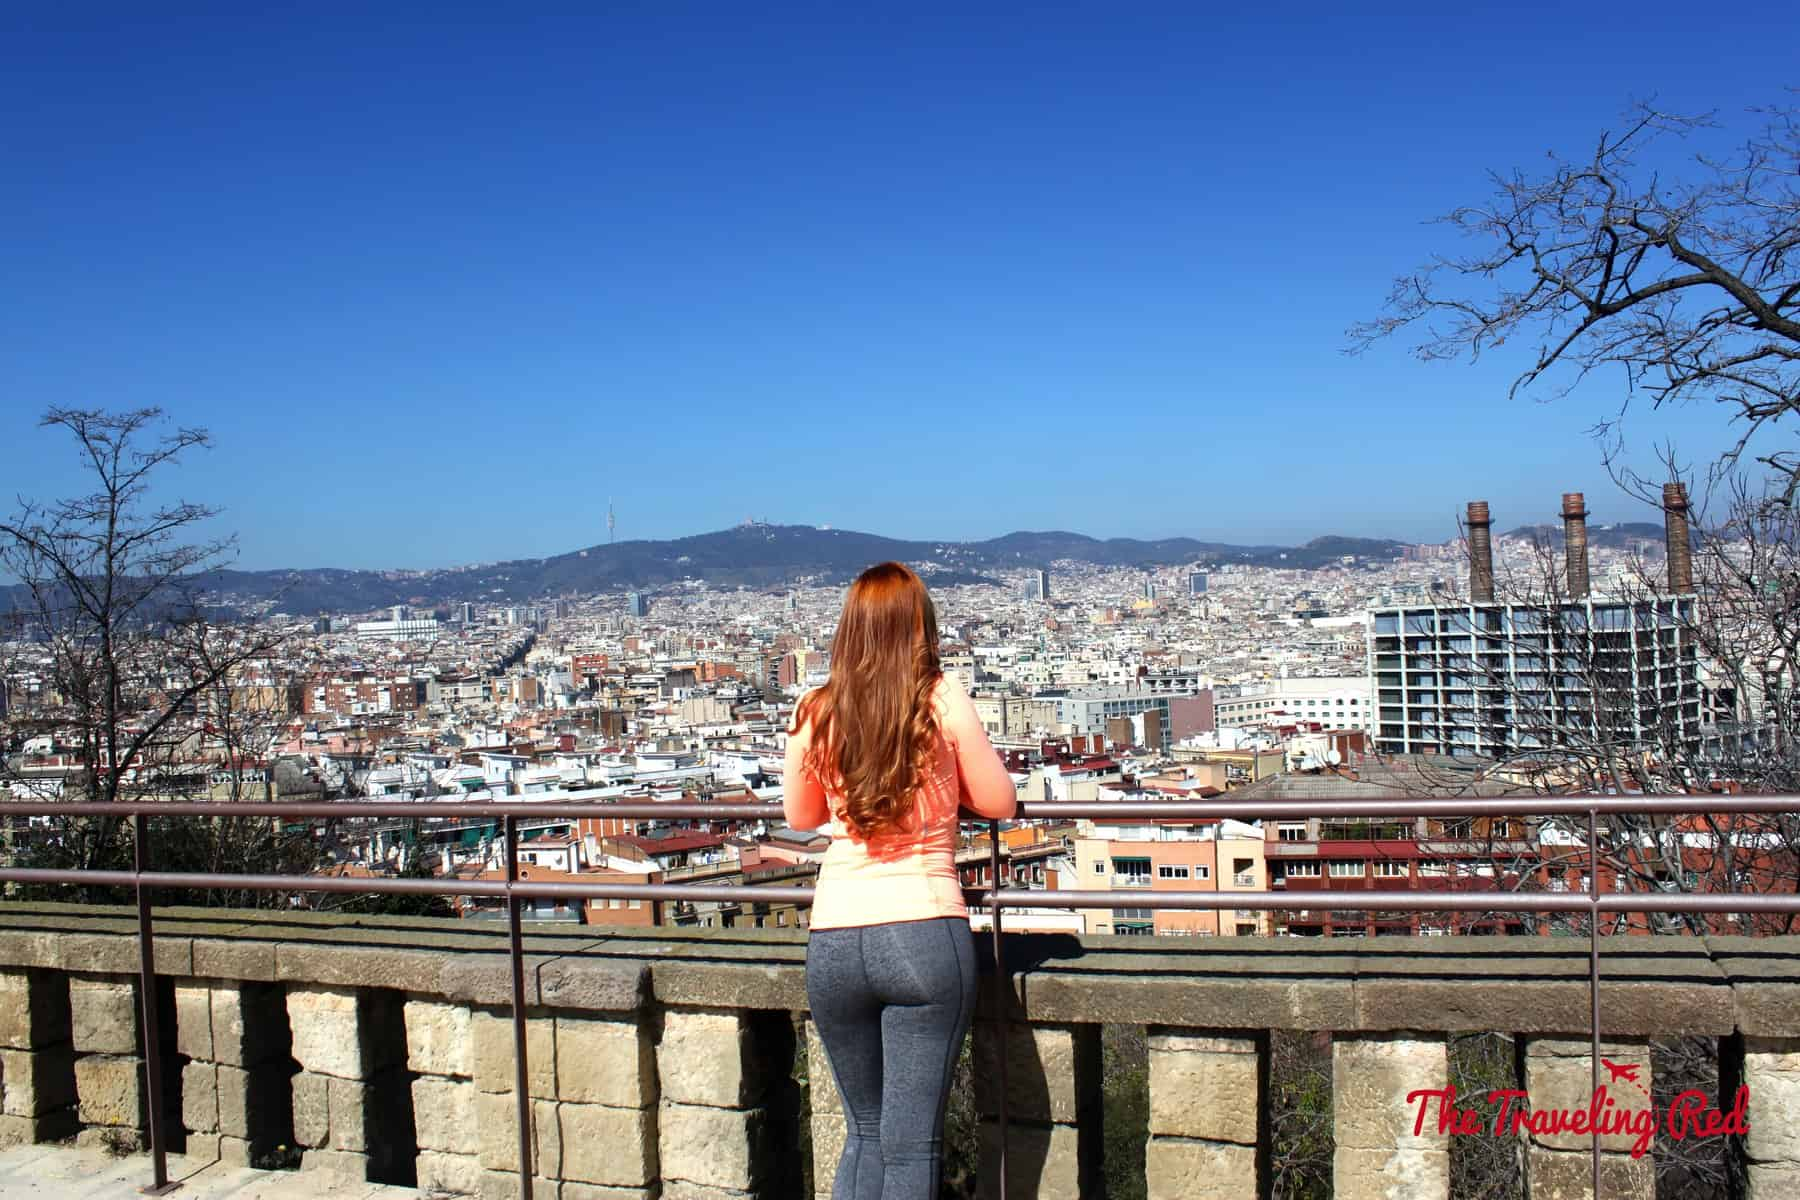 One of the best views of Barcelona, Spain is from Montjuic. It is known for its sweeping panoramic views of the city.